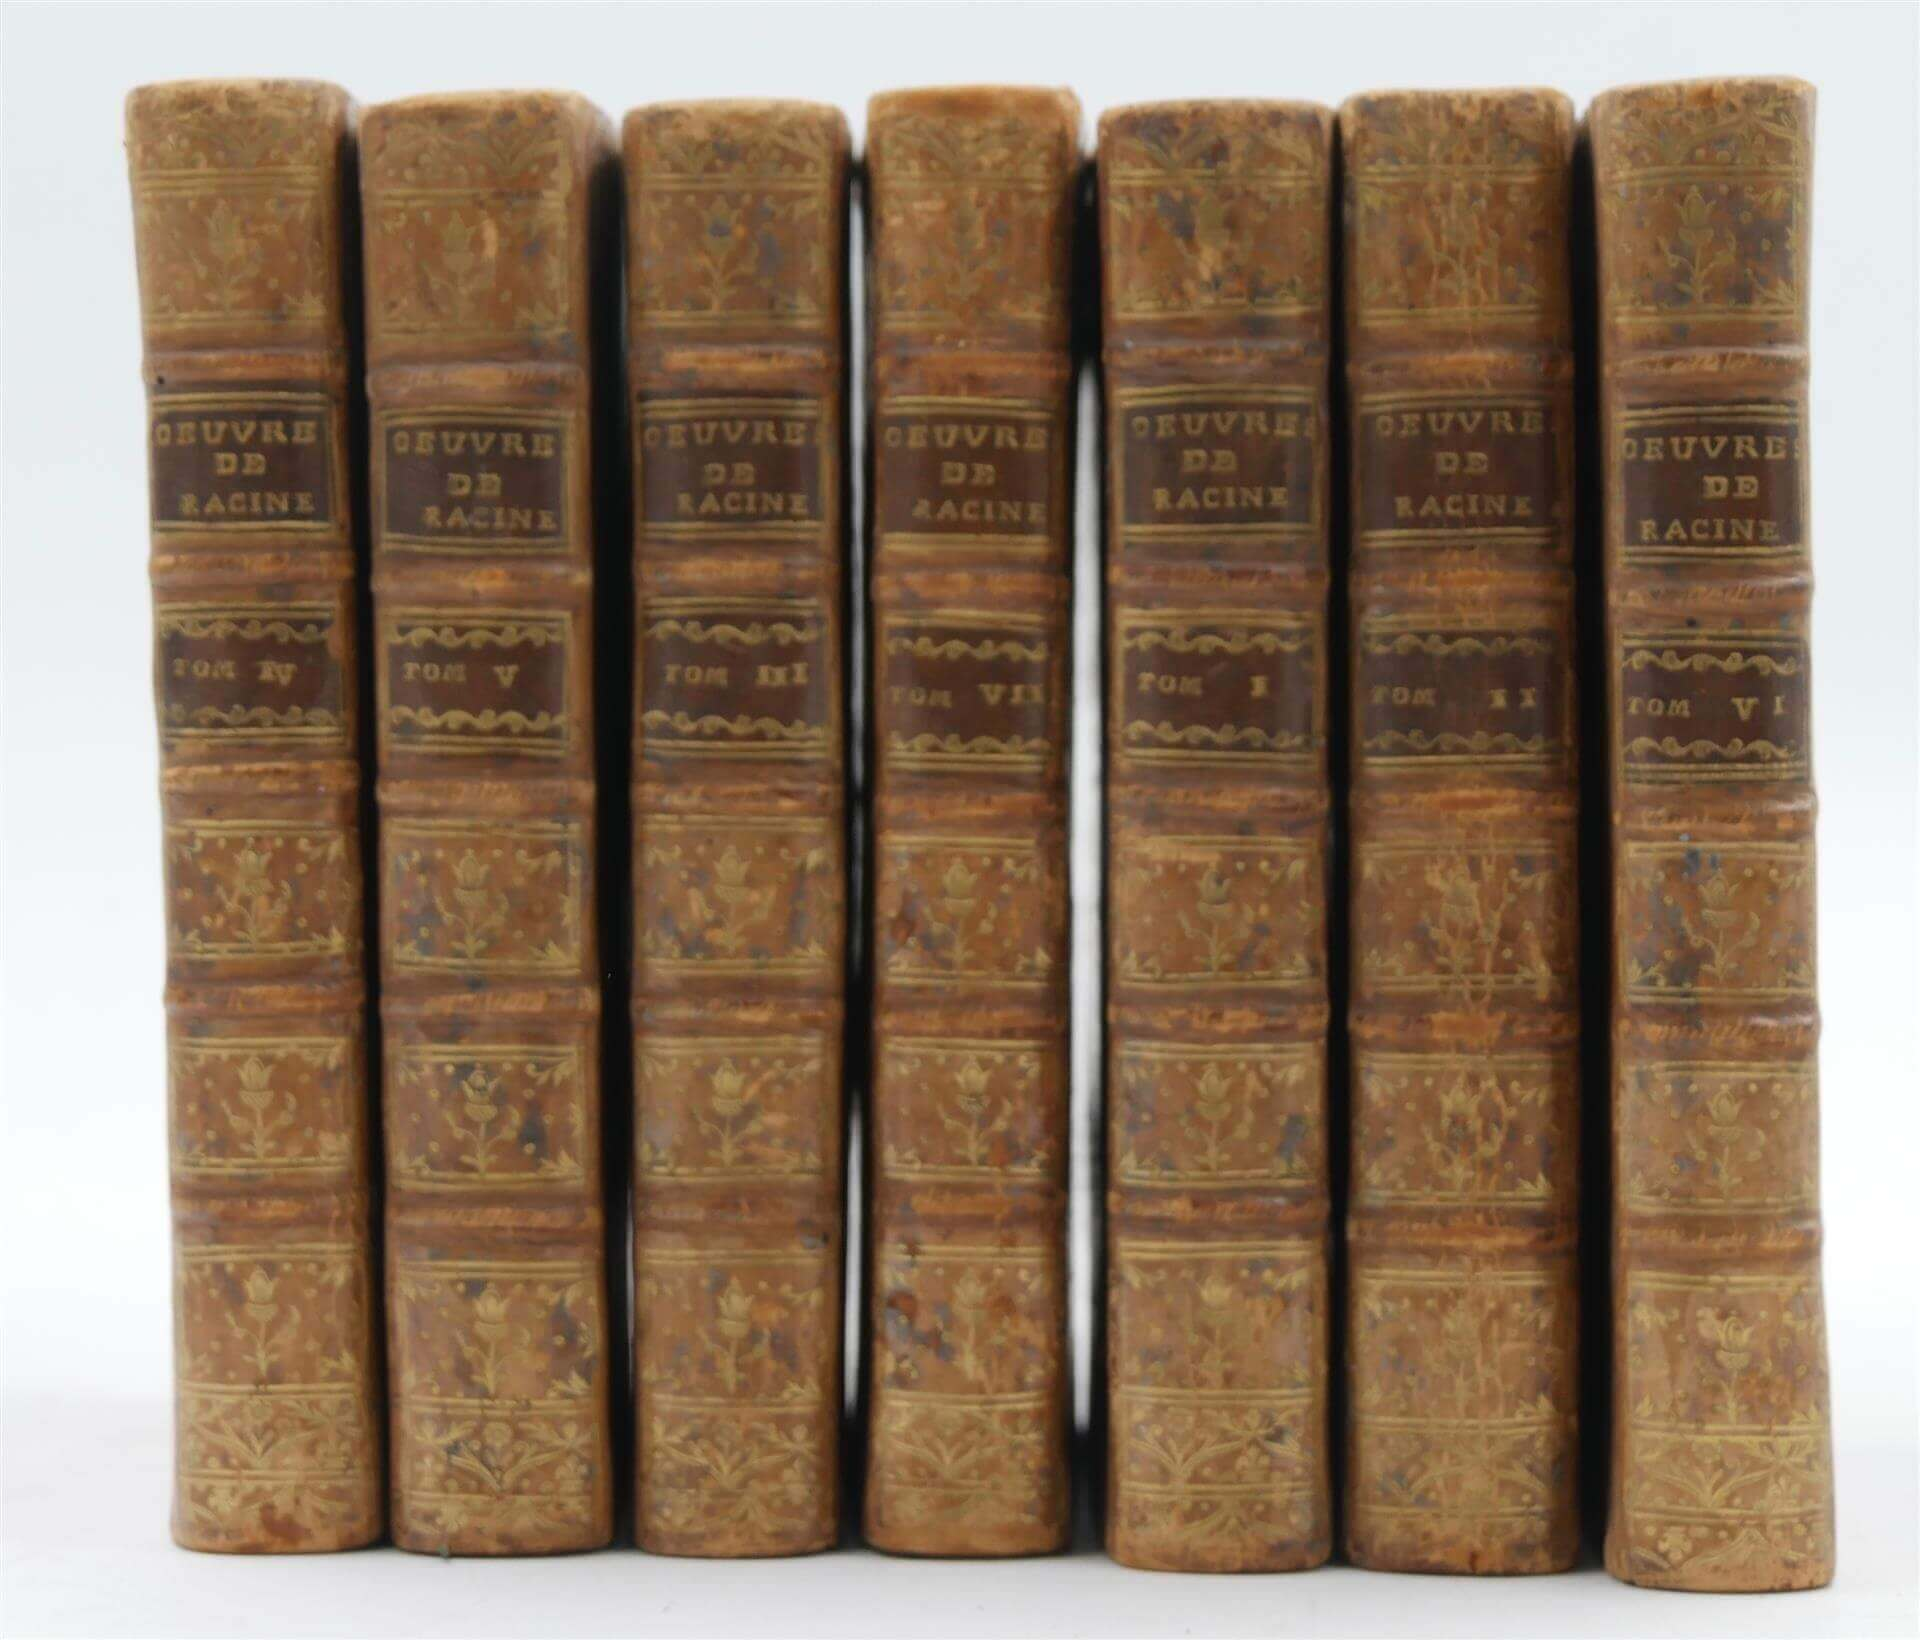 RACINE - Oeuvres - 1768 - 7 tomes